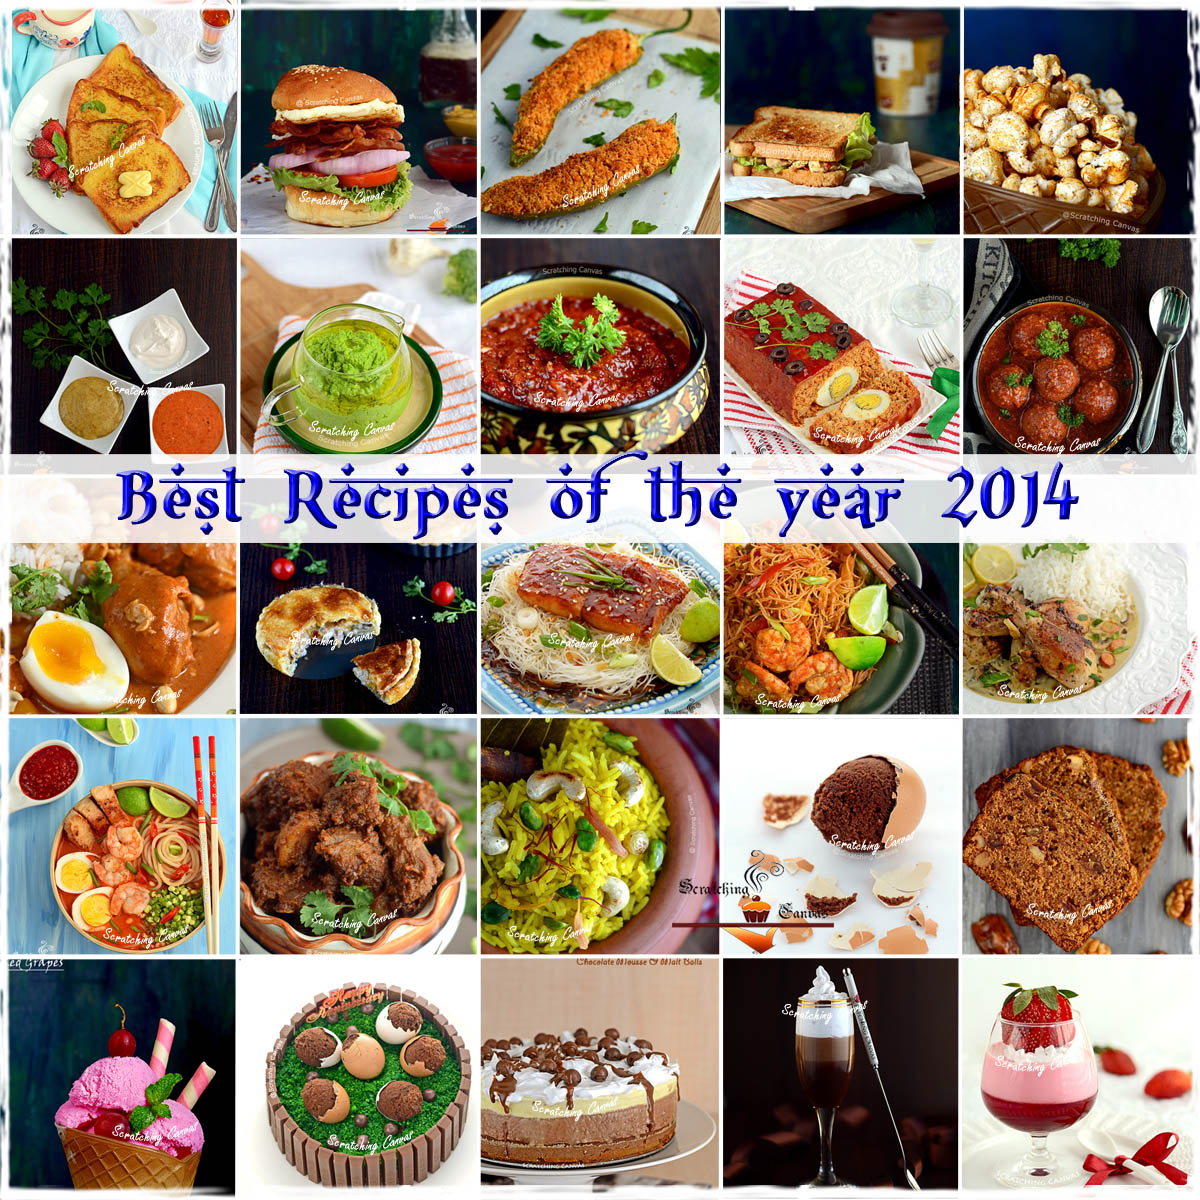 Best Recipes of the year 2014 | ScratchingCanvas